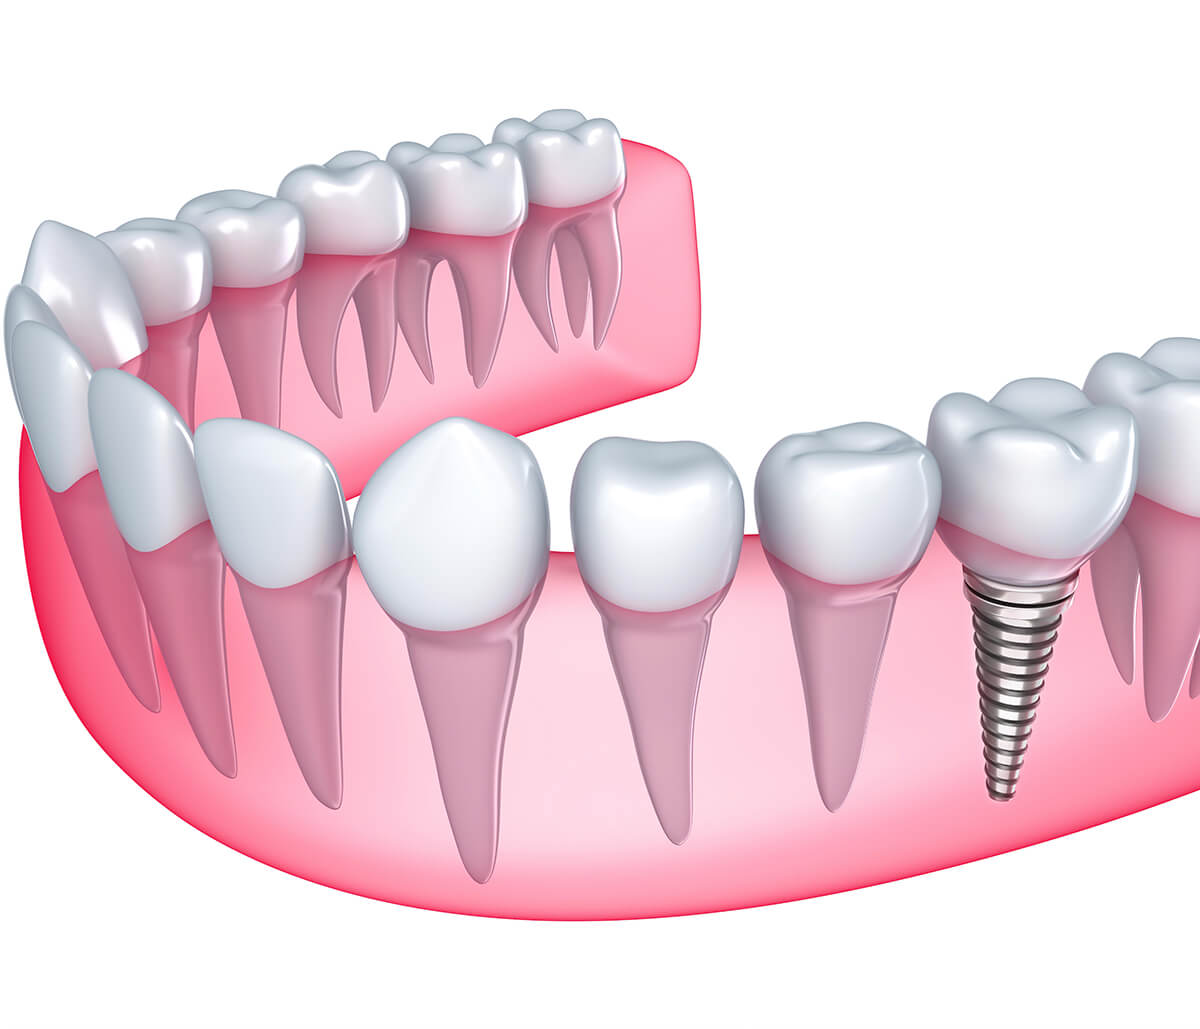 Do You Have Missing Teeth? Visit a Dental Implant Dentist in Laguna Niguel, CA Area